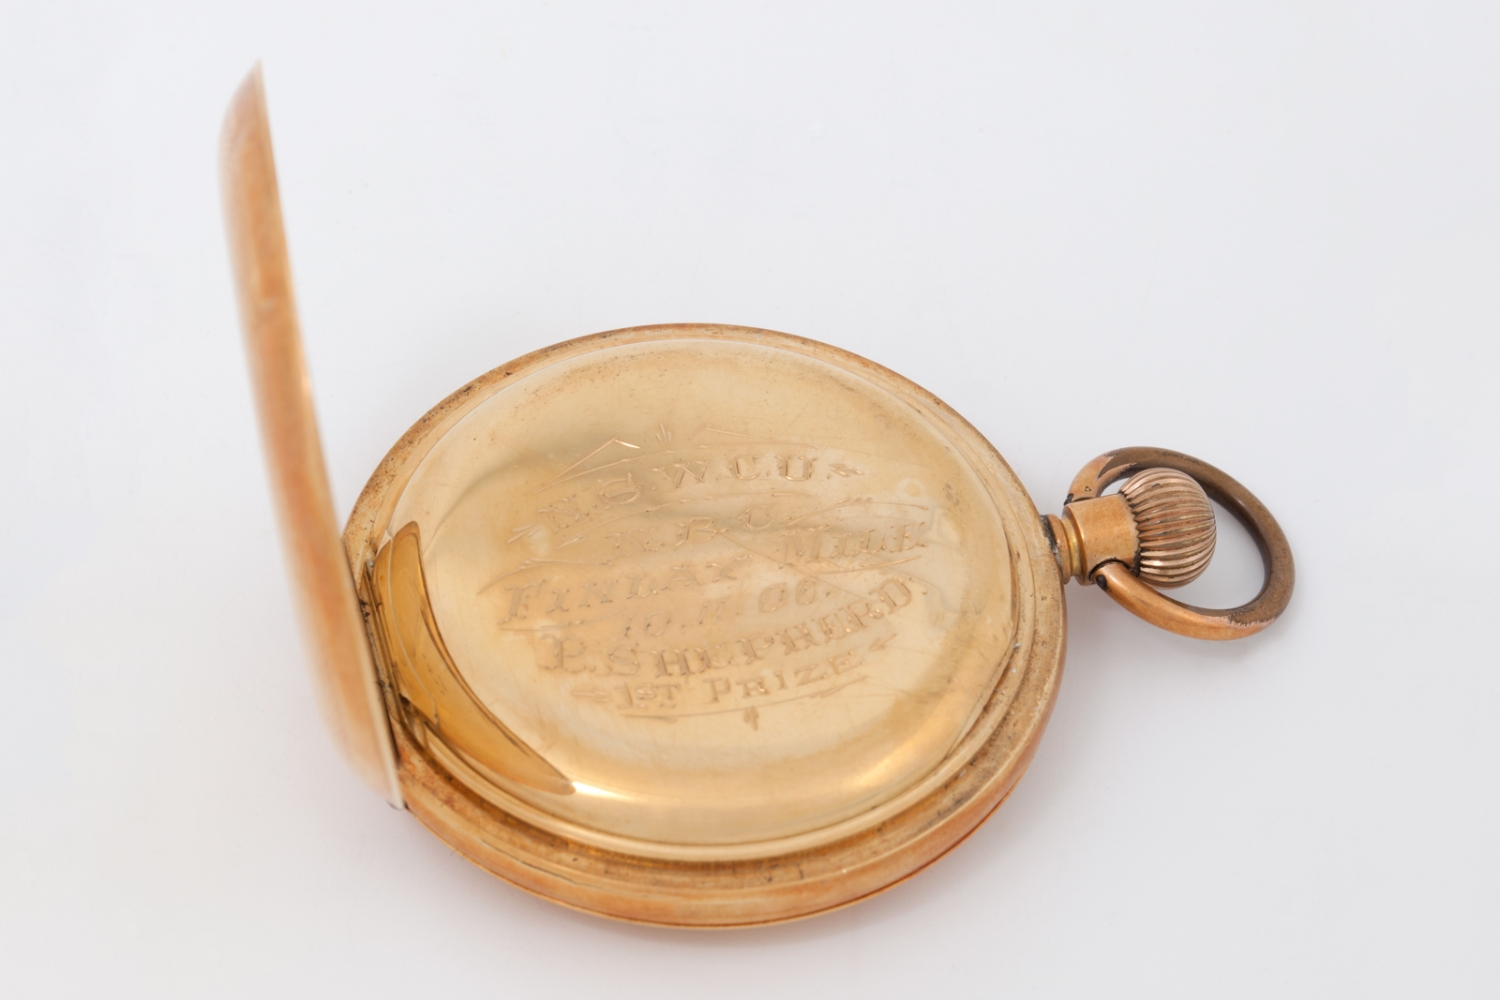 Gold pocket watch which belonged to a police officer, Sgt Percival Shepherd